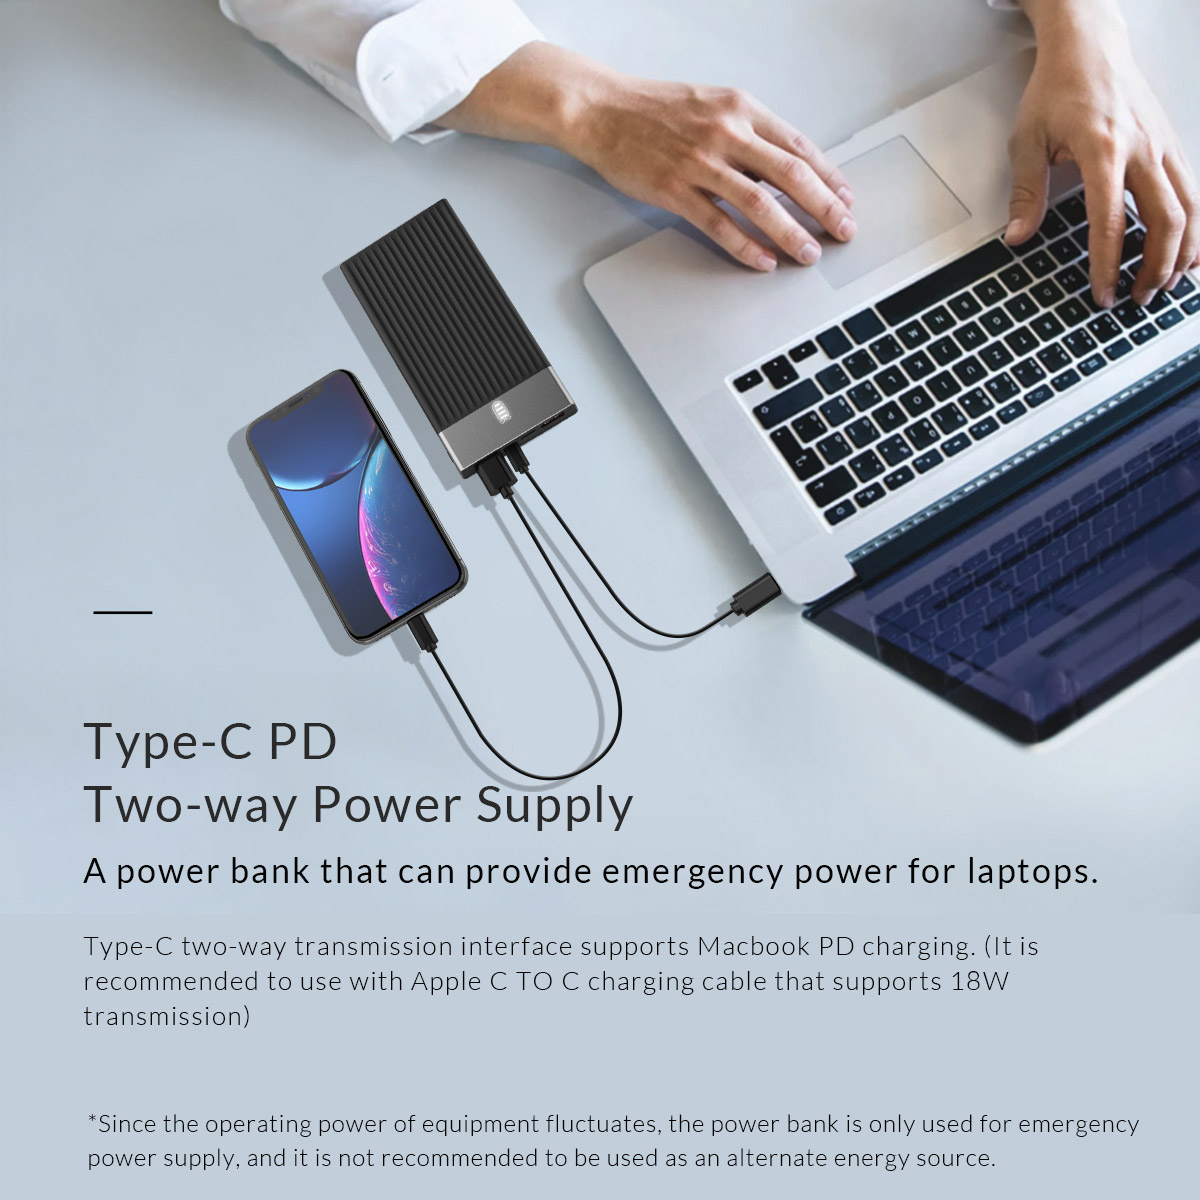 support PD 18w charging protocol